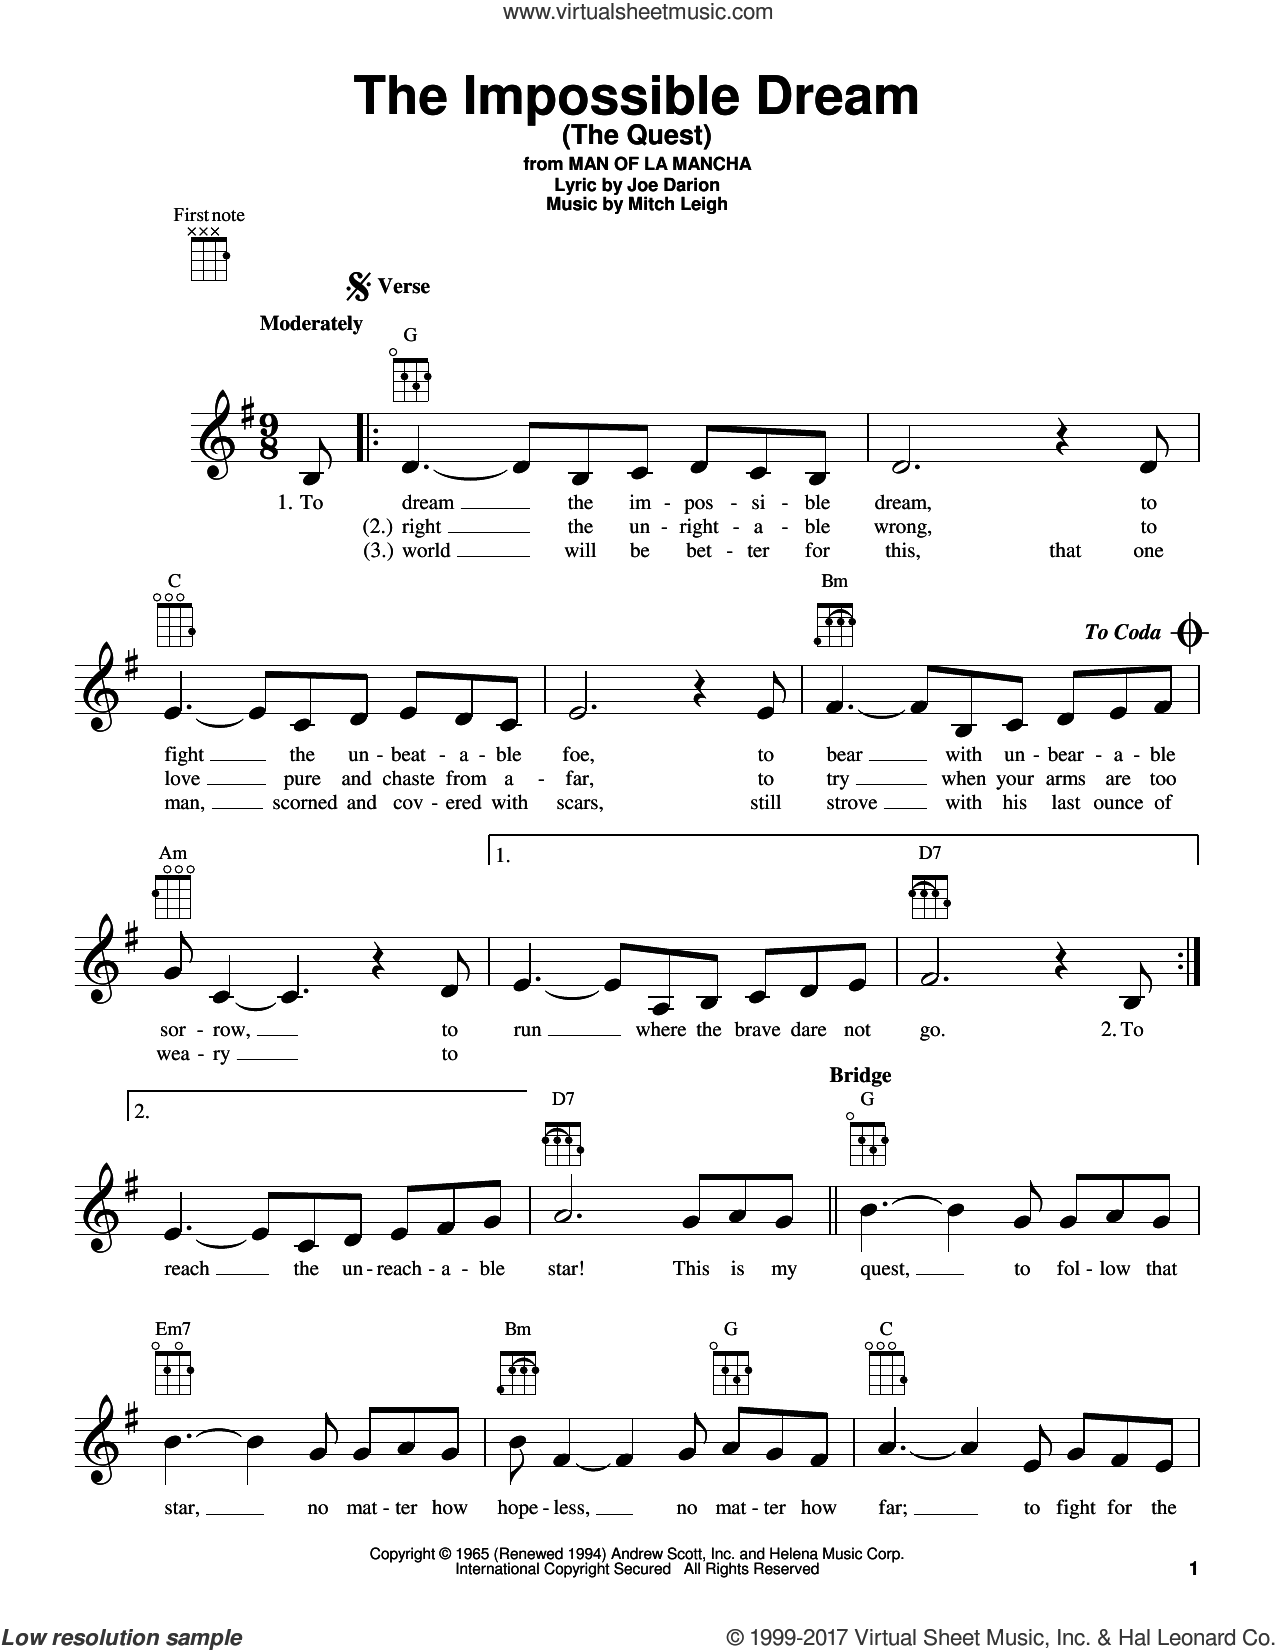 The Impossible Dream (The Quest) sheet music for ukulele by Mitch Leigh and Joe Darion, intermediate skill level